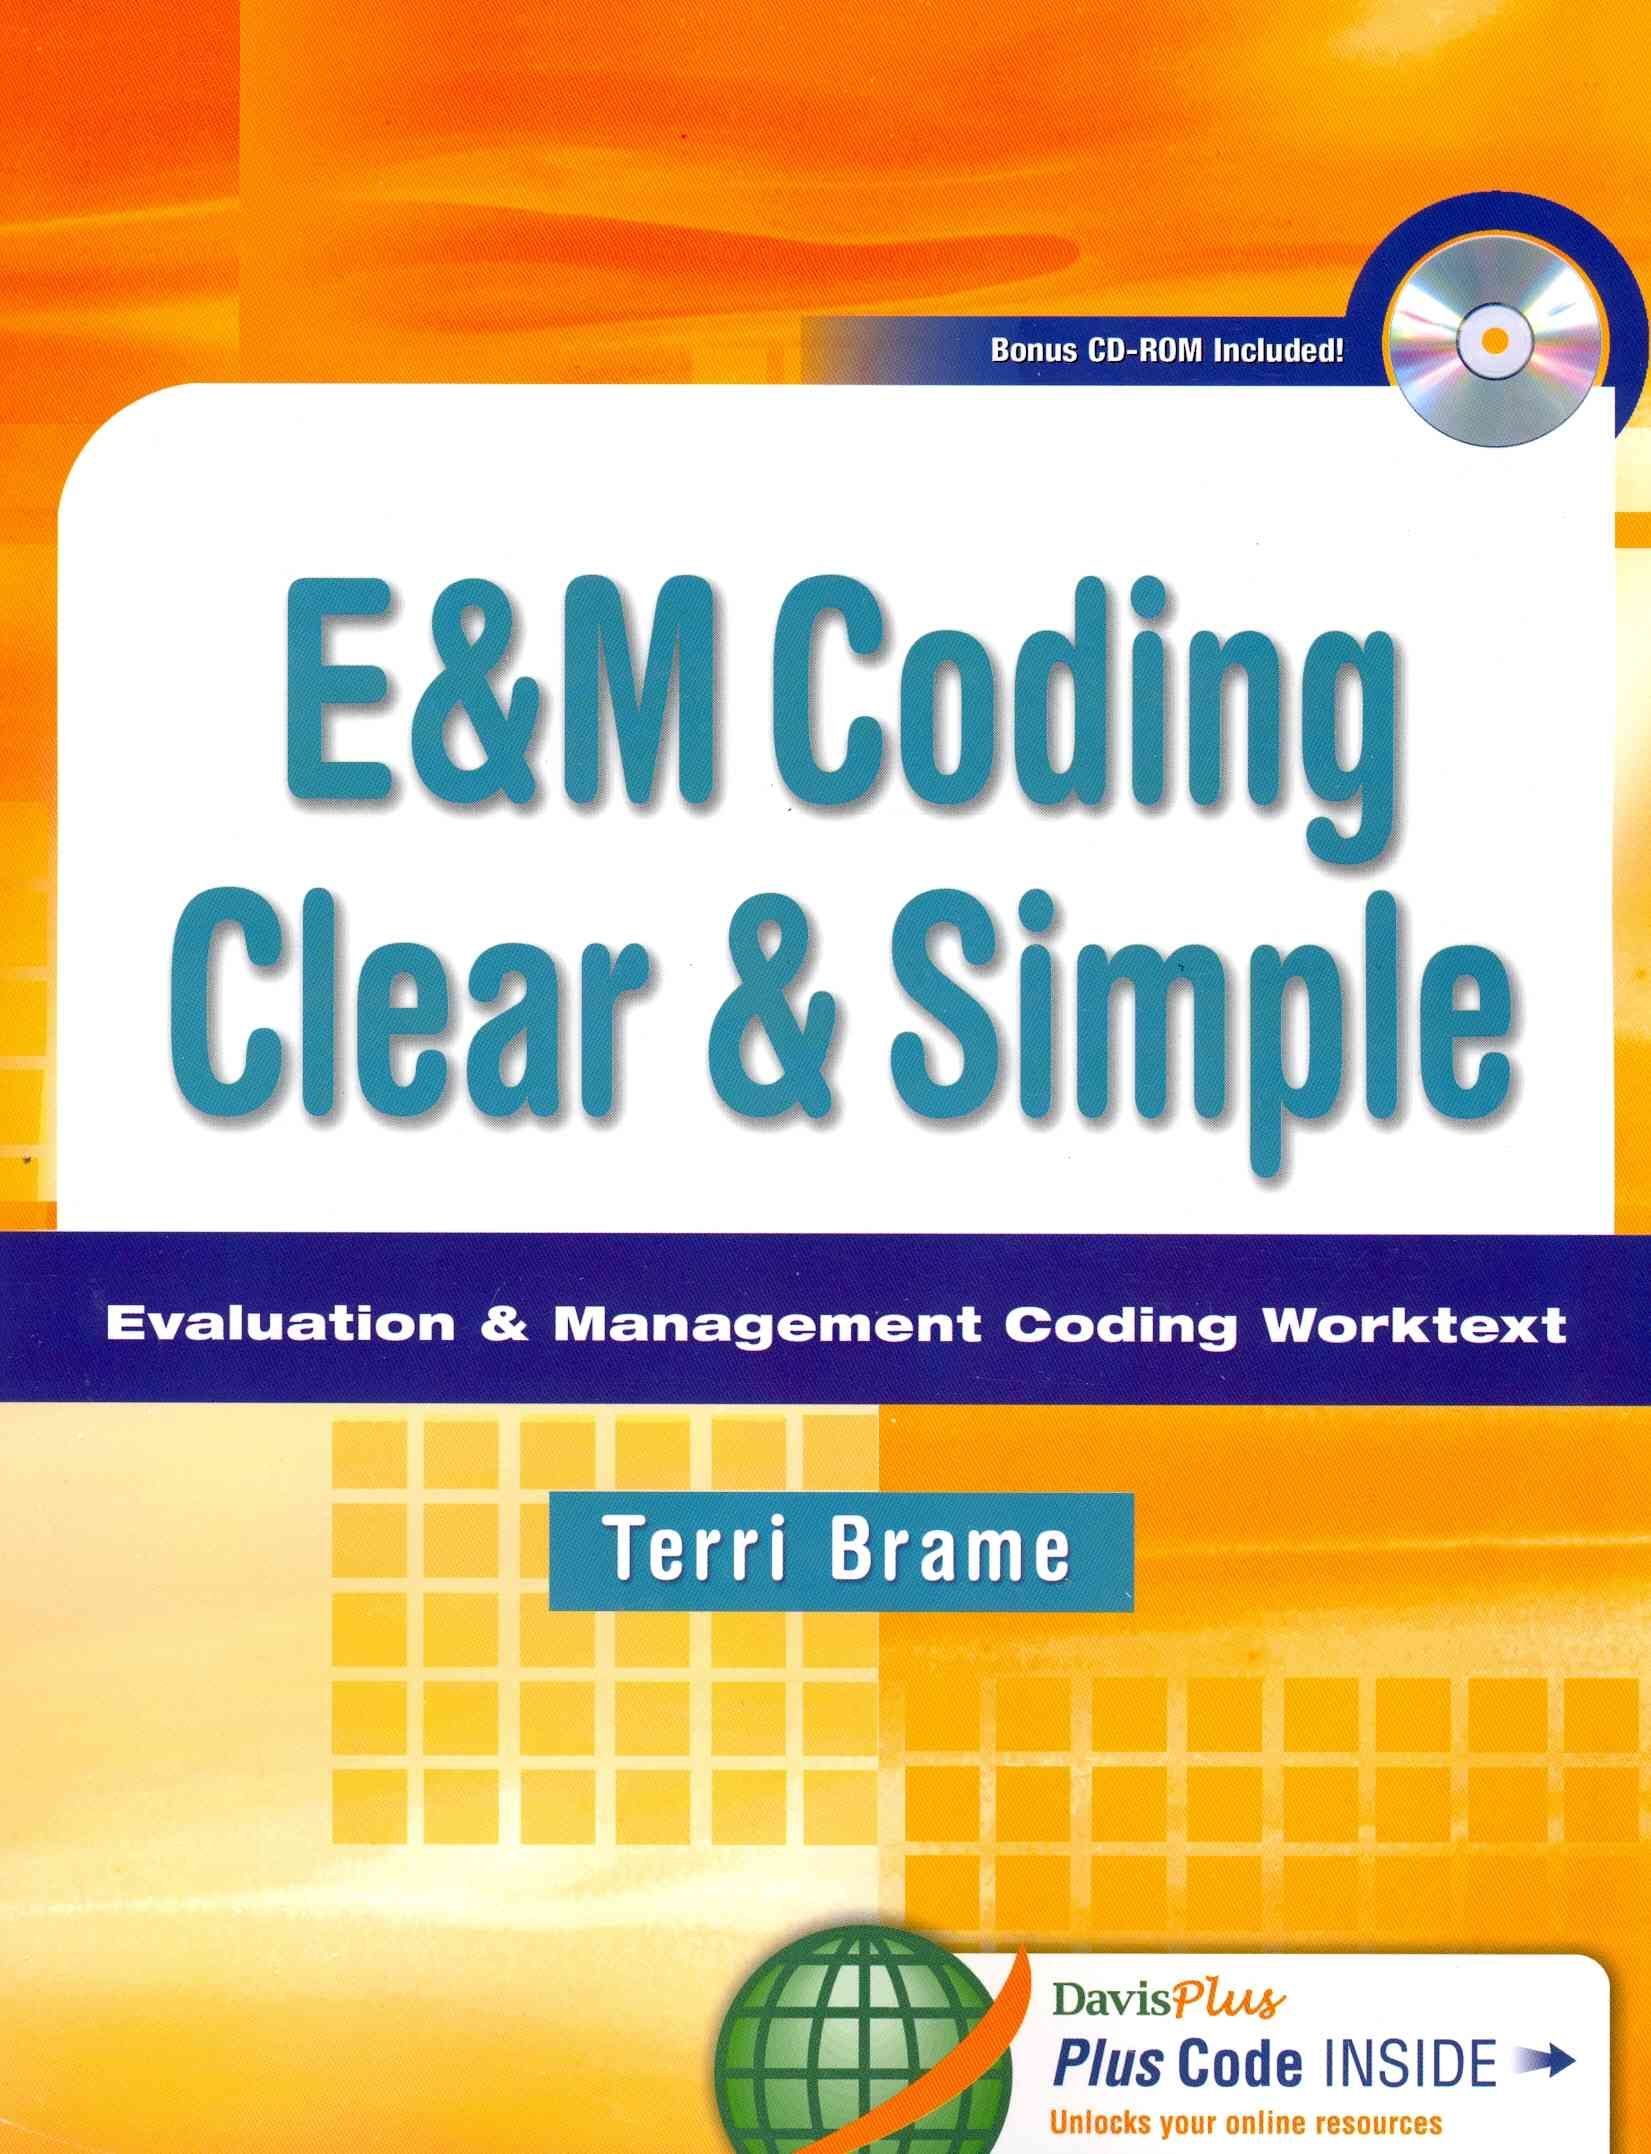 E&m Coding Clear & Simple By Brame, Terri Ann